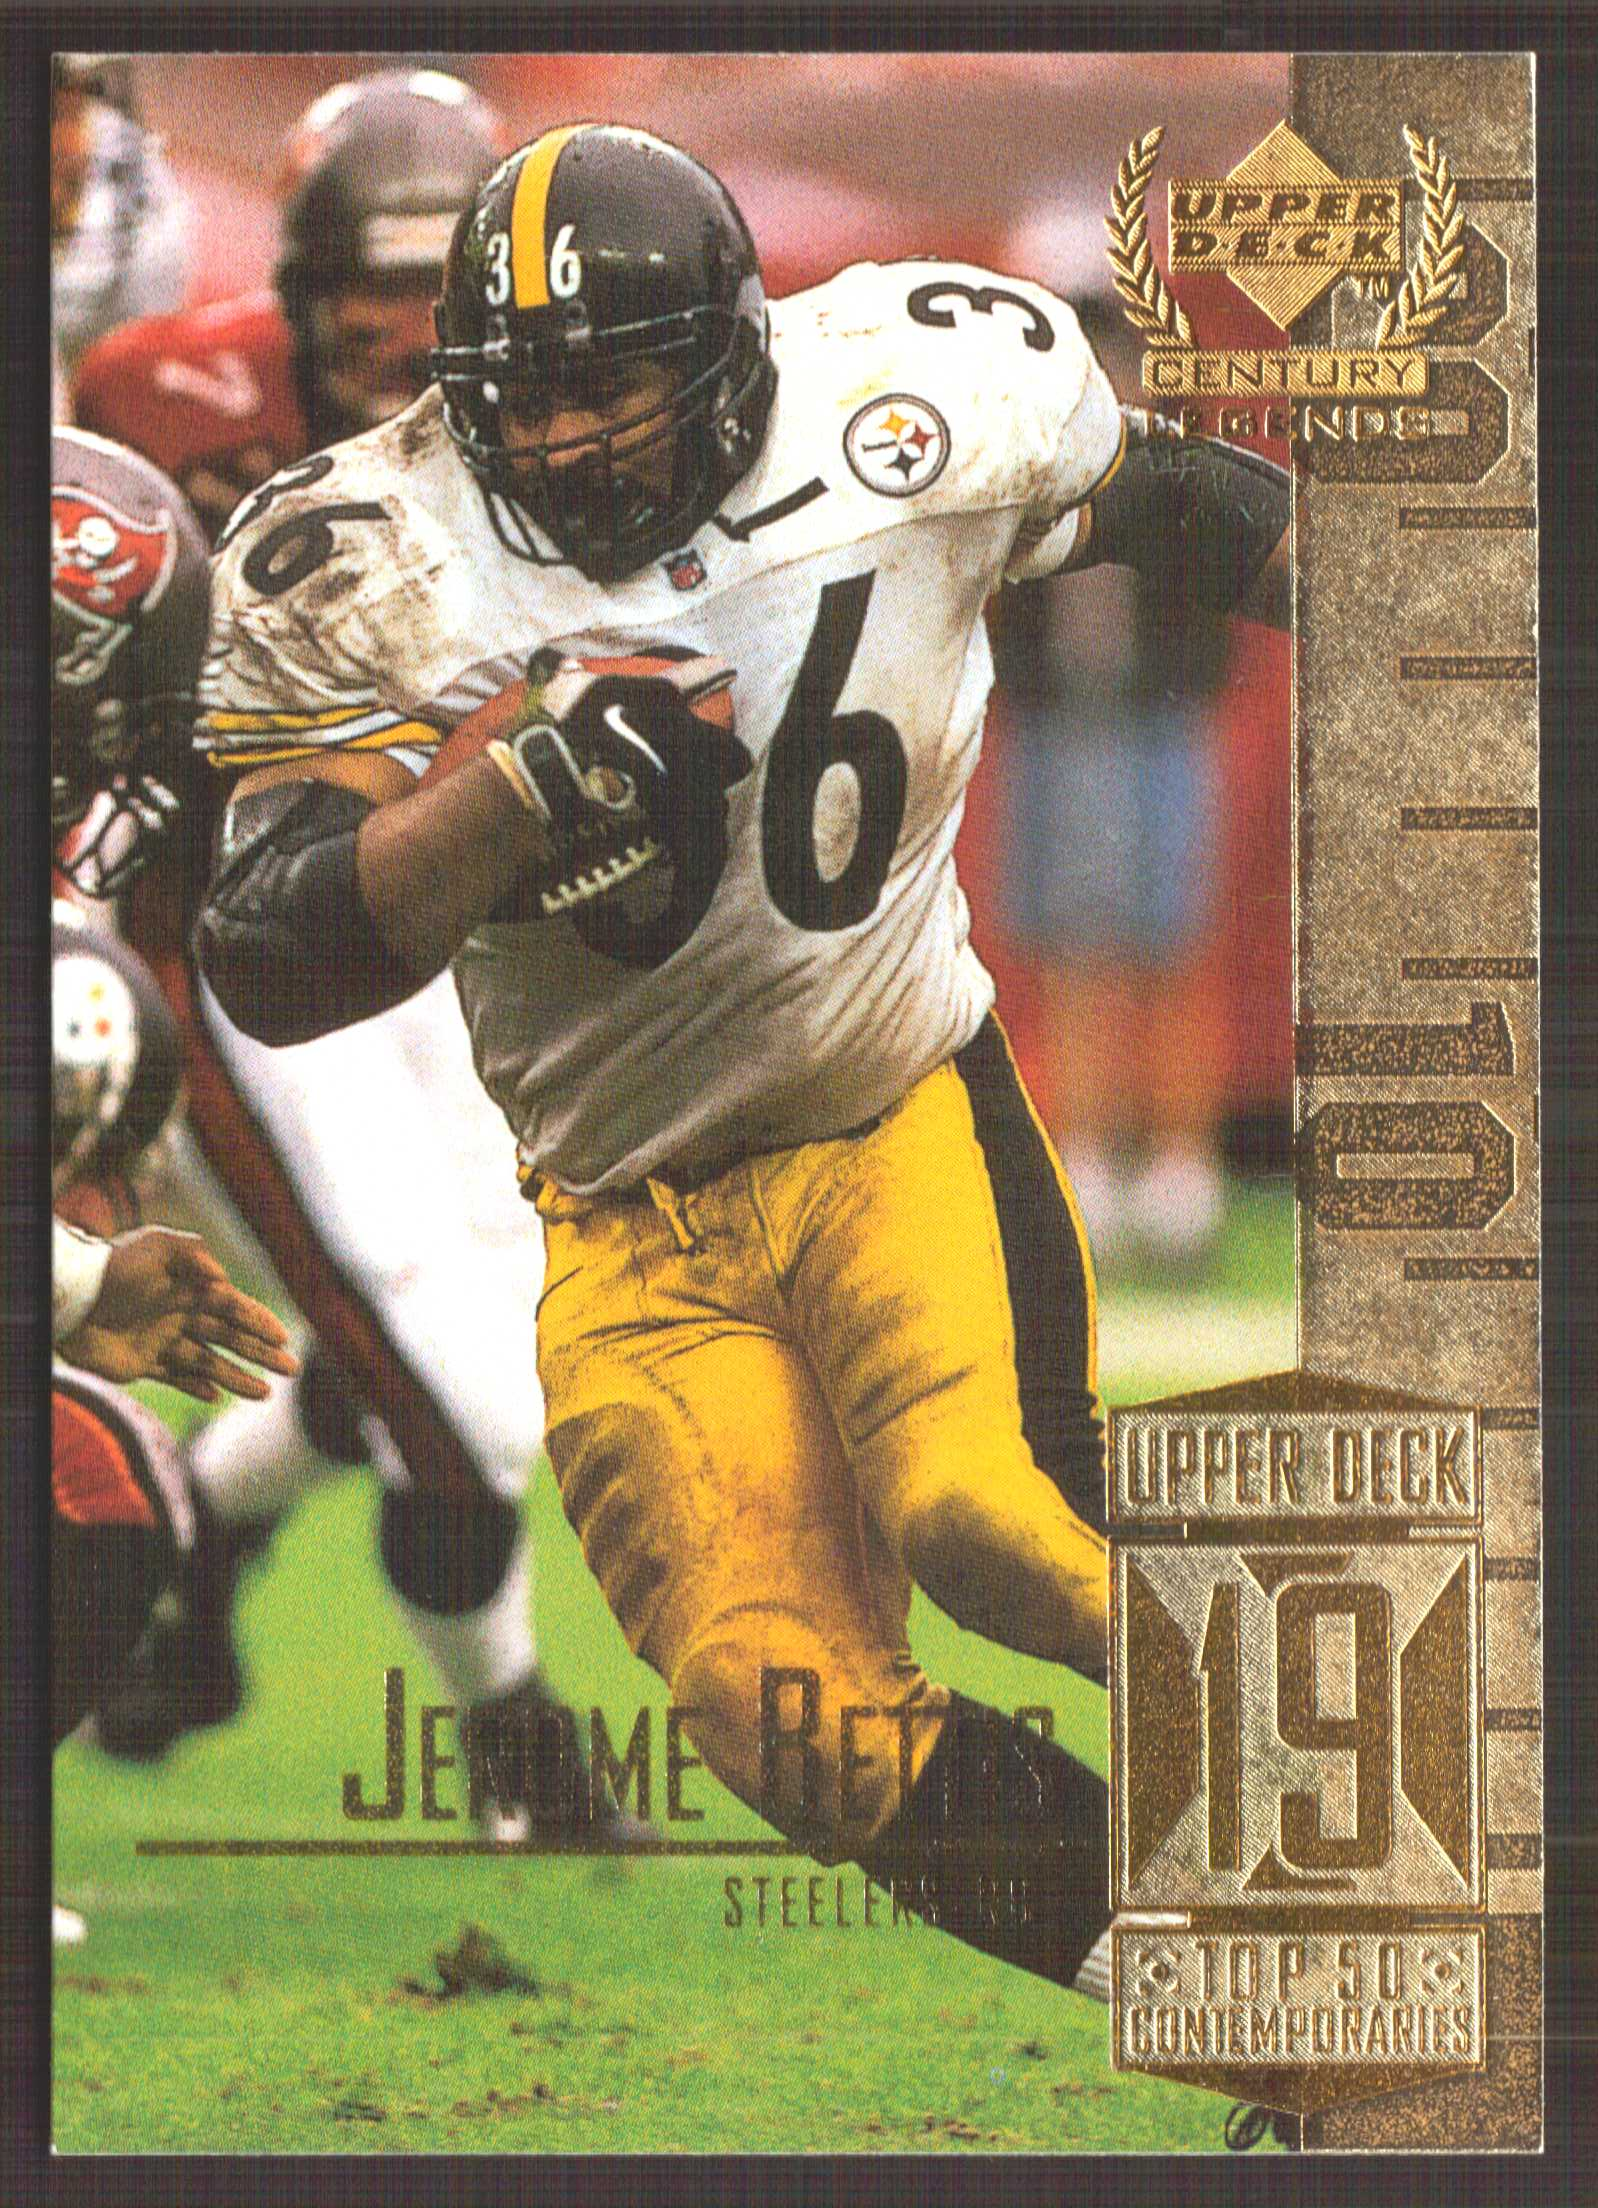 1999 Upper Deck Century Legends #69 Jerome Bettis